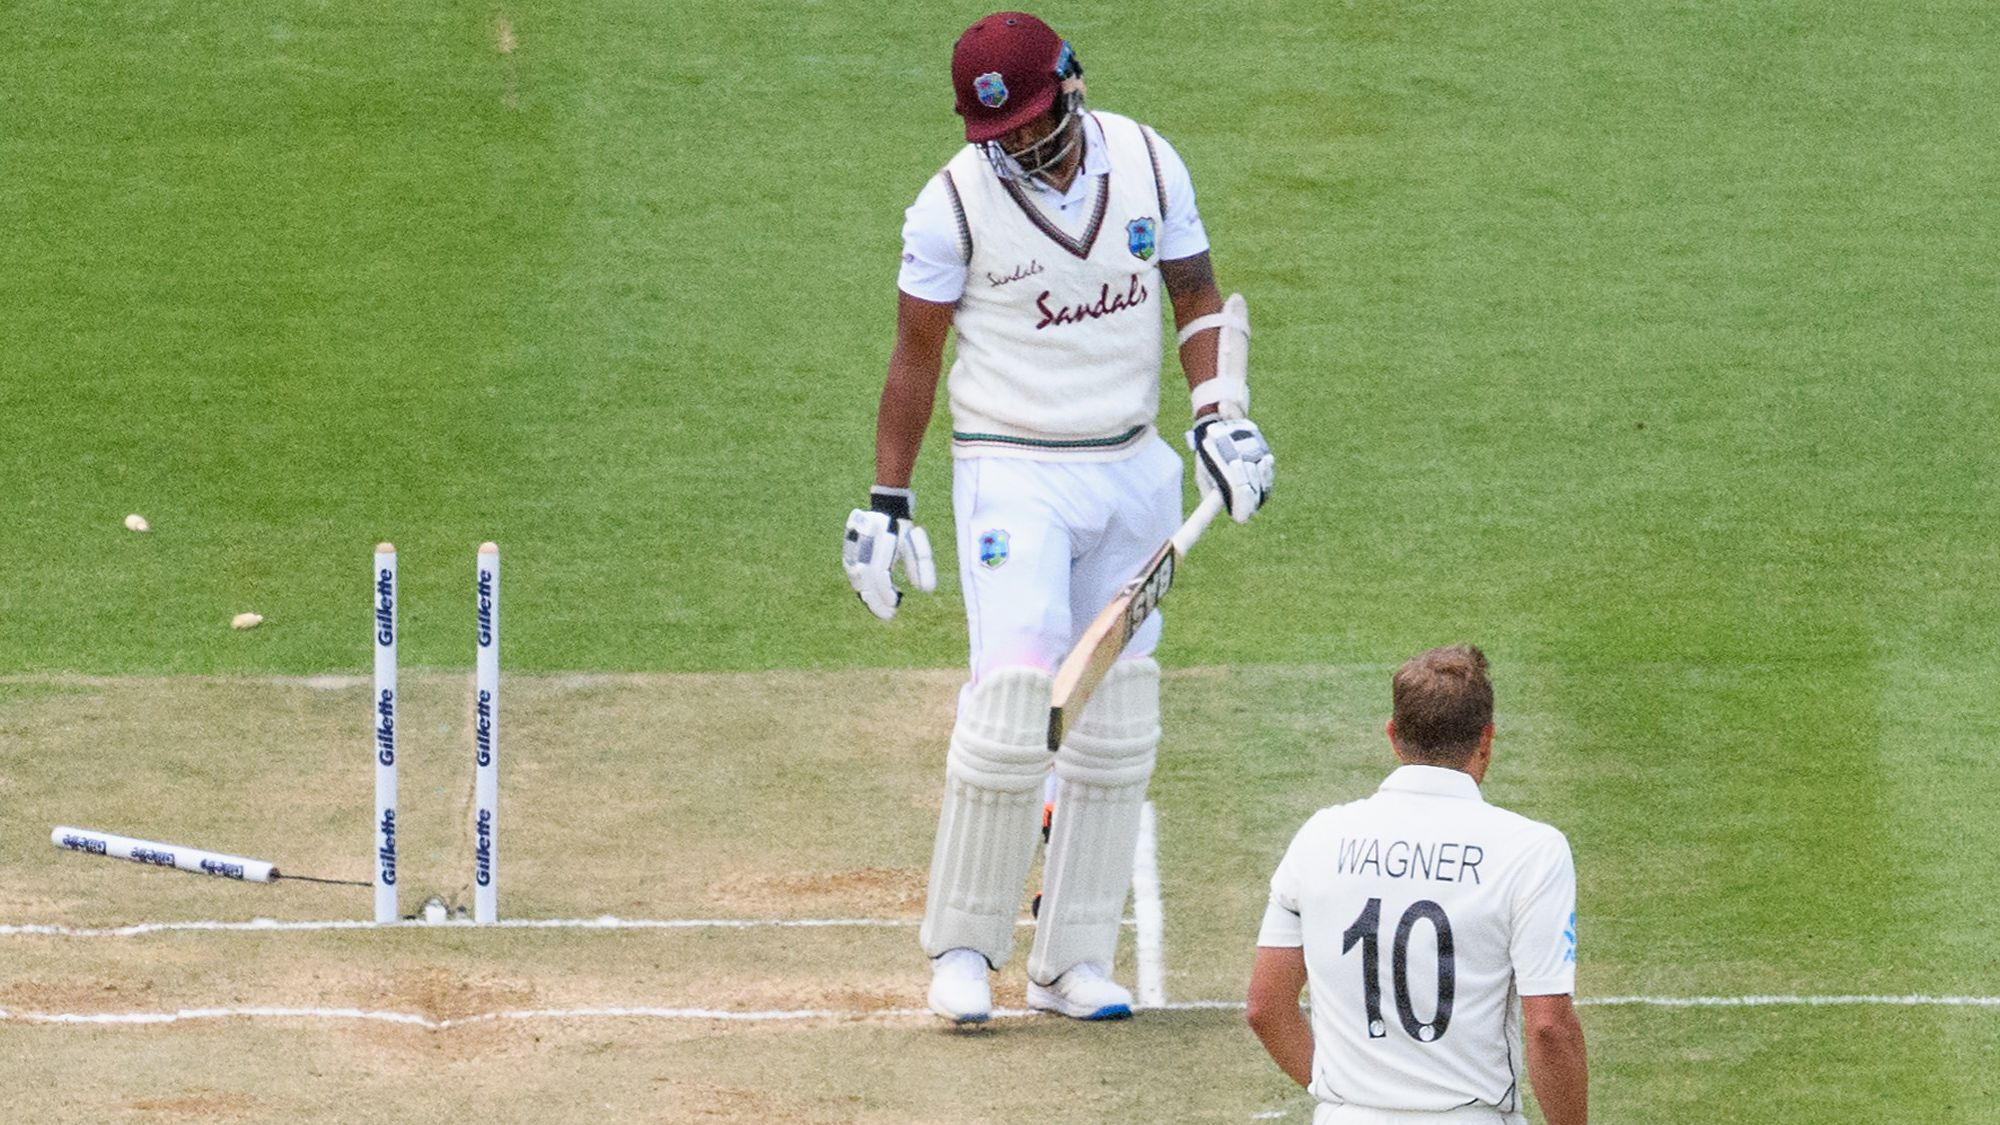 Shannon Gabriel of the West Indies looks dejected after being dismissed by Neil Wagner of New Zealand.